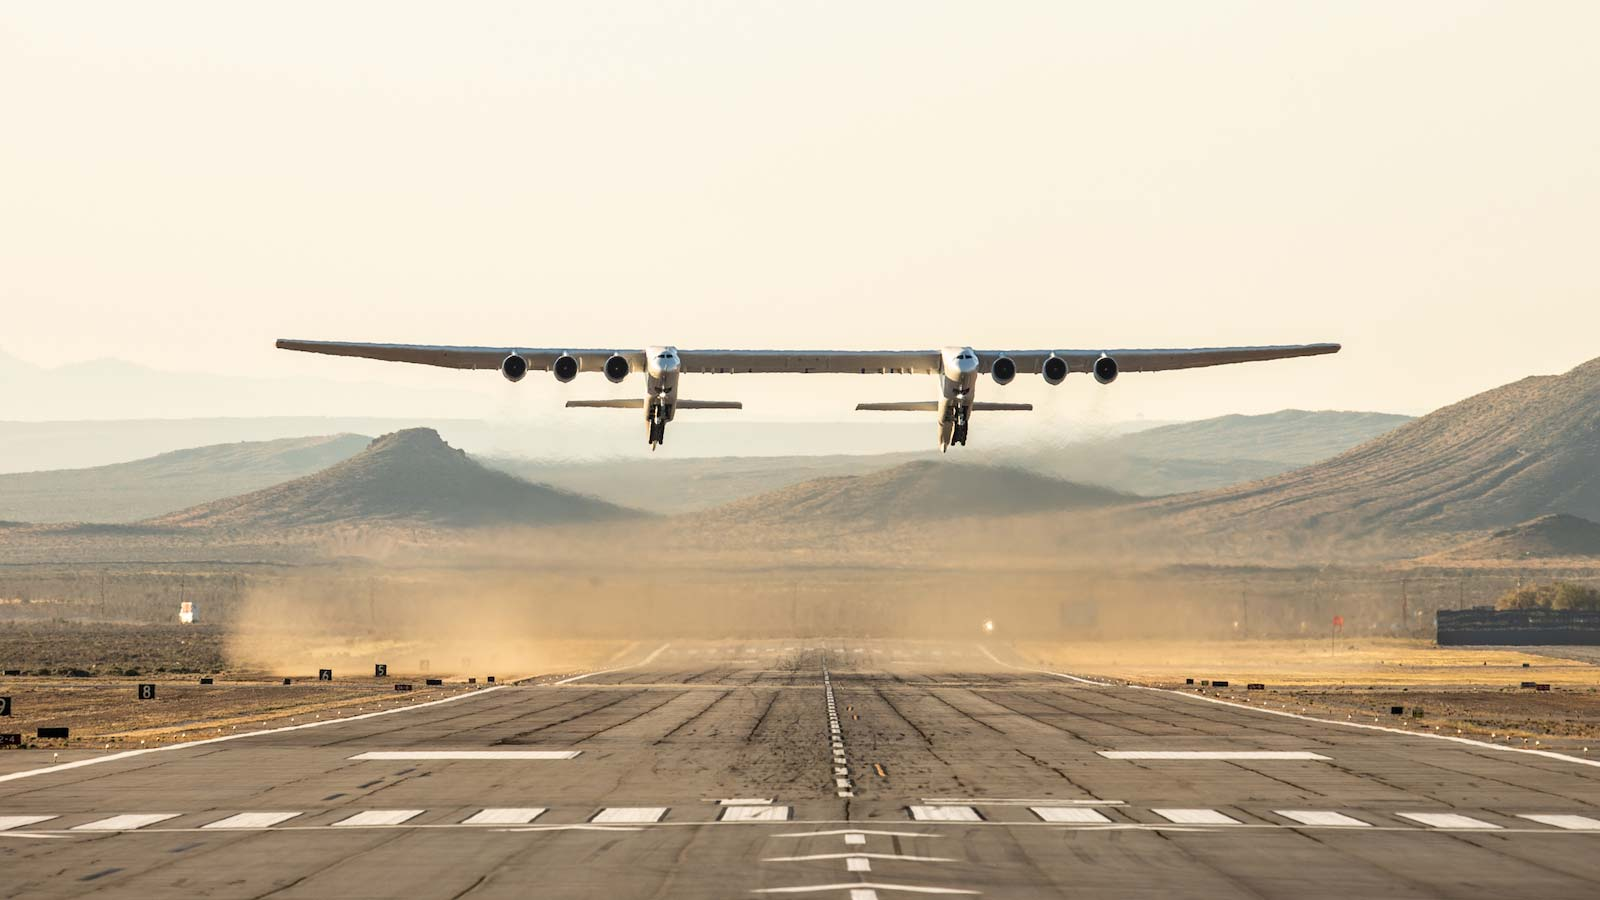 The Stratolaunch is built to launch rockets into space.